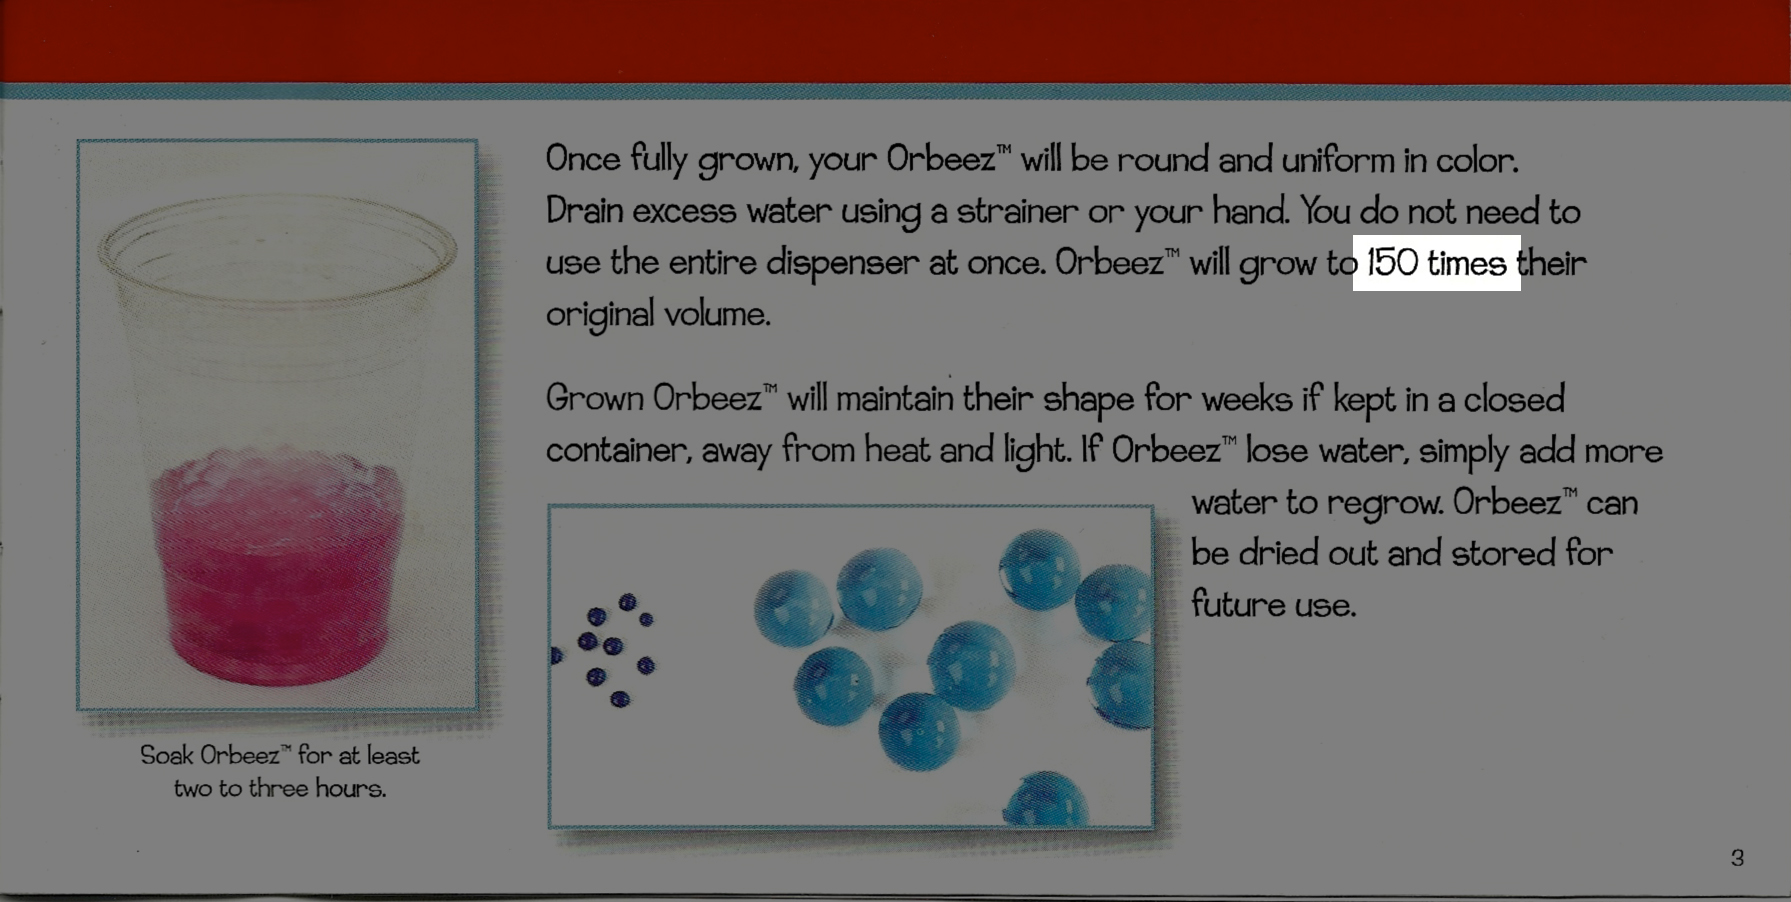 How to make orbeez grow really fast